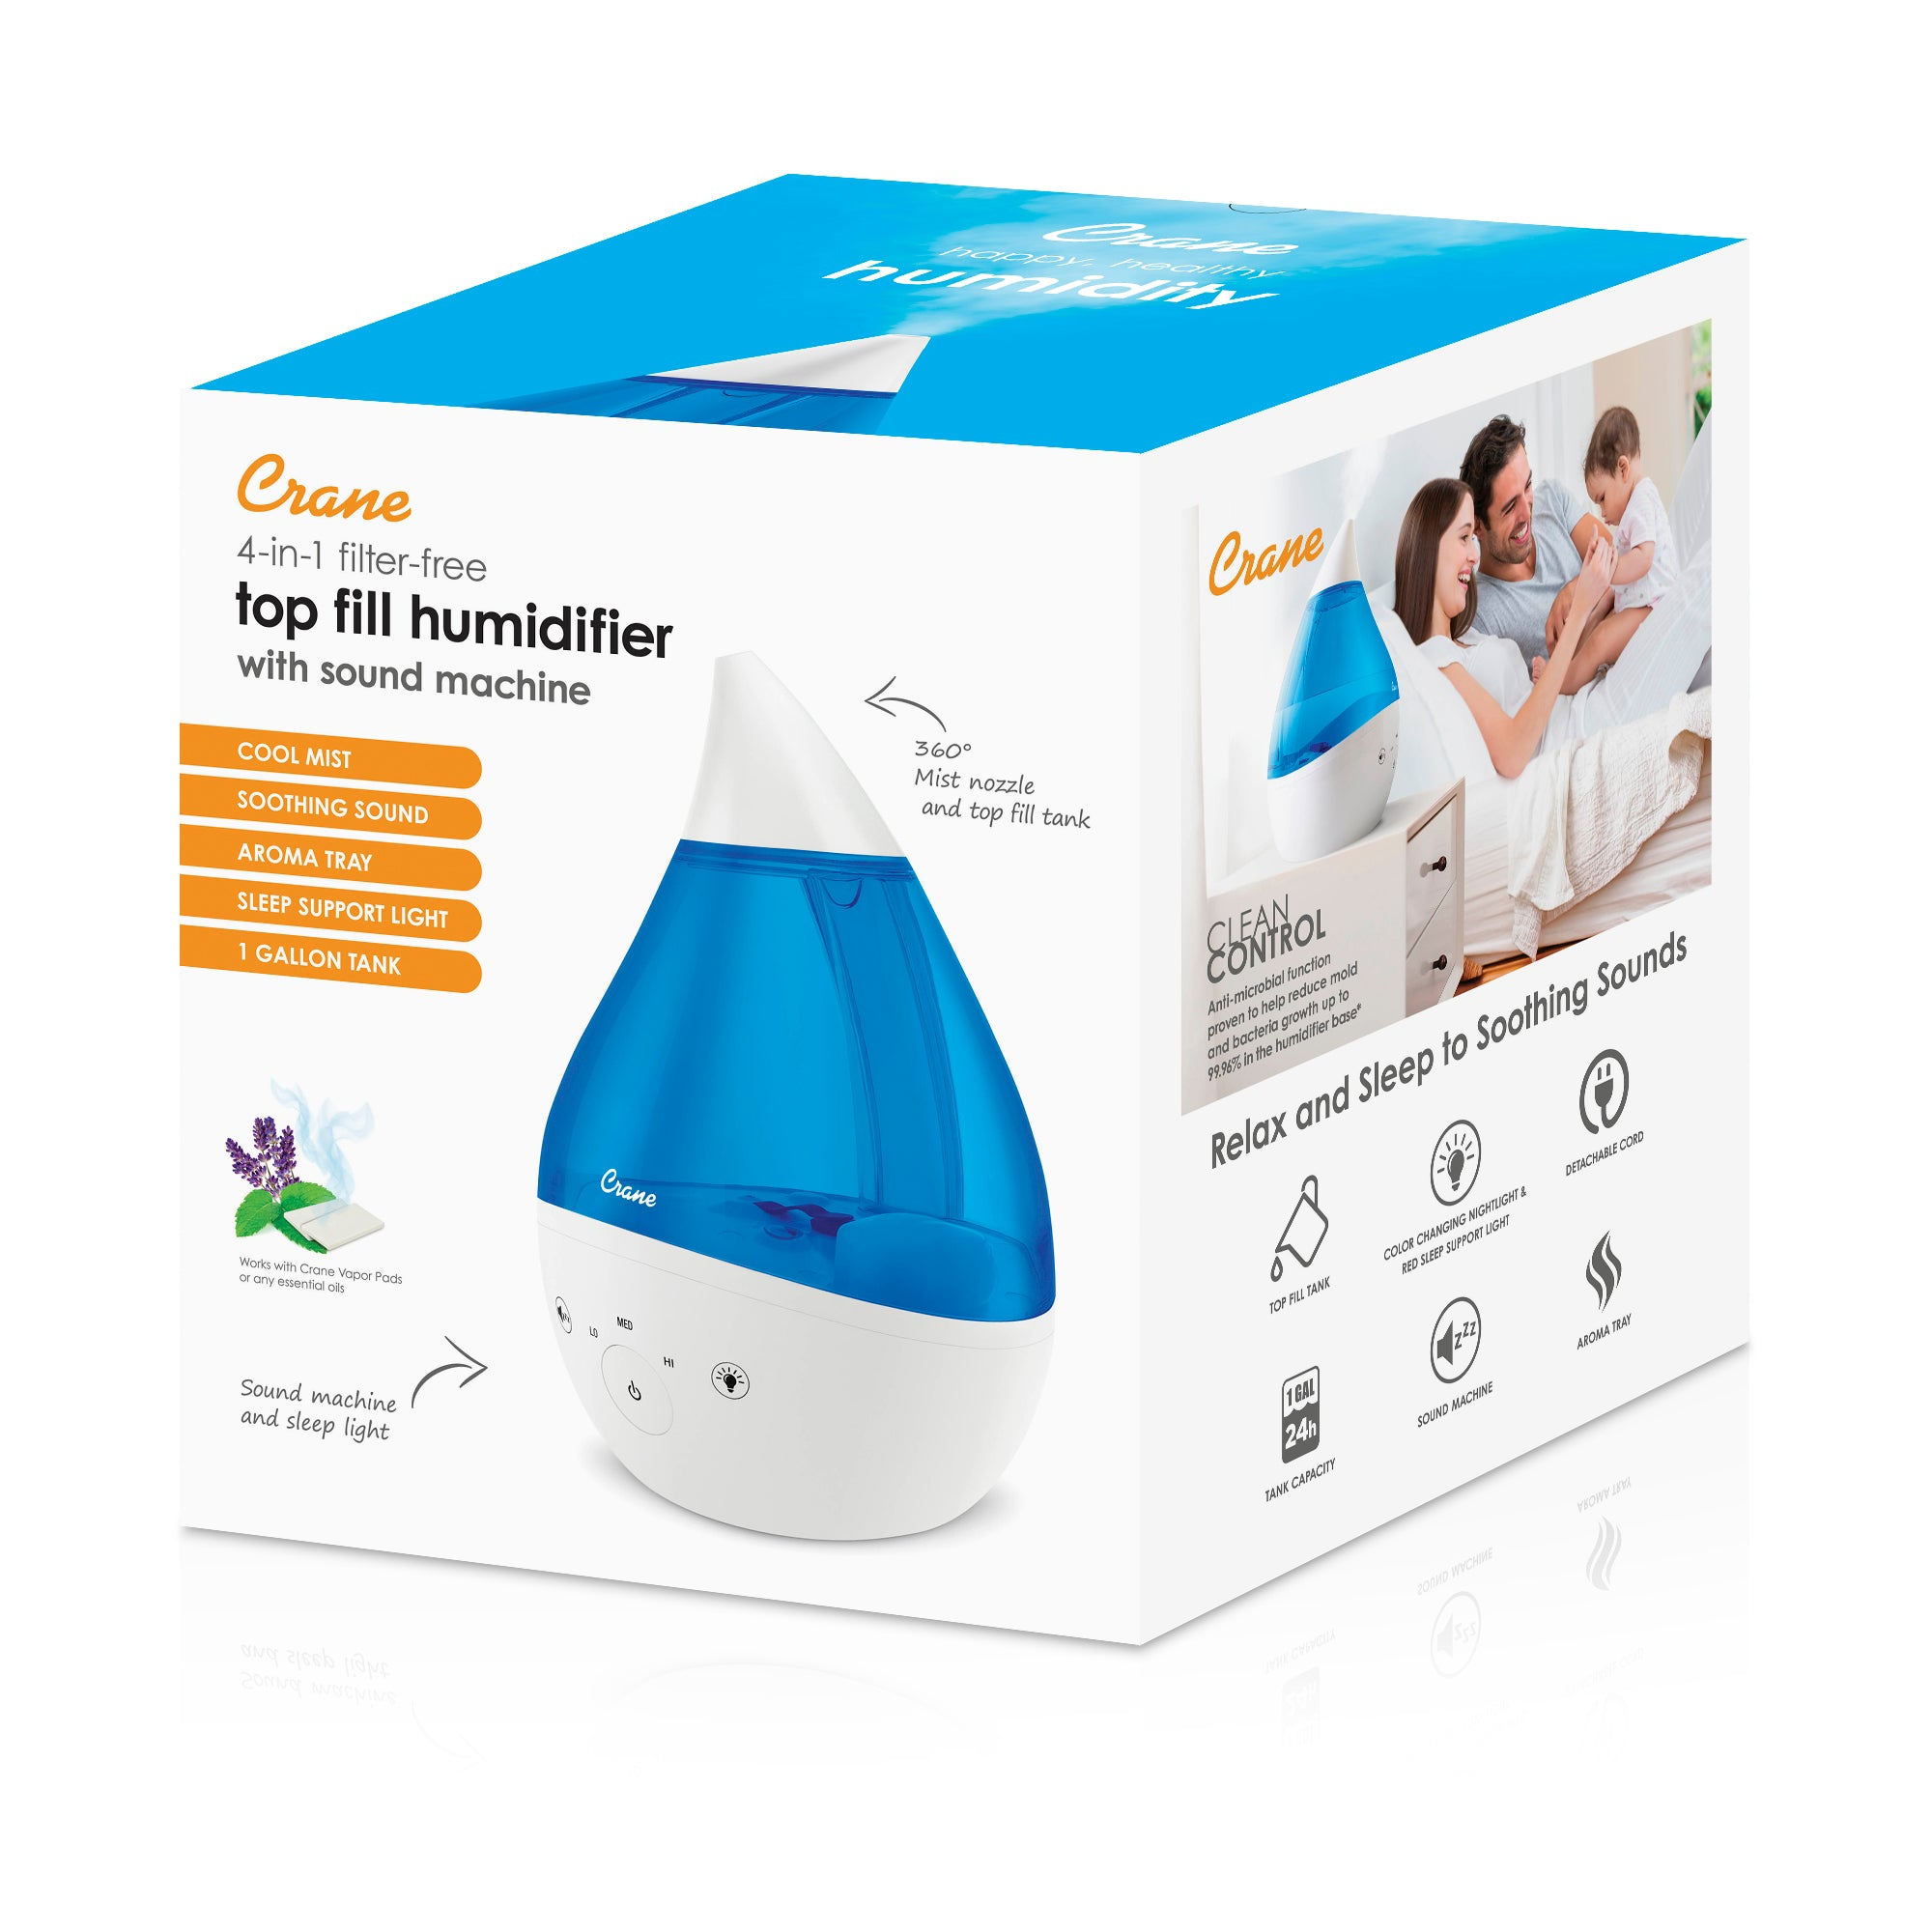 Crane 4-in-1 Cool Mist Humidifier with Sound Machine - Blue & White